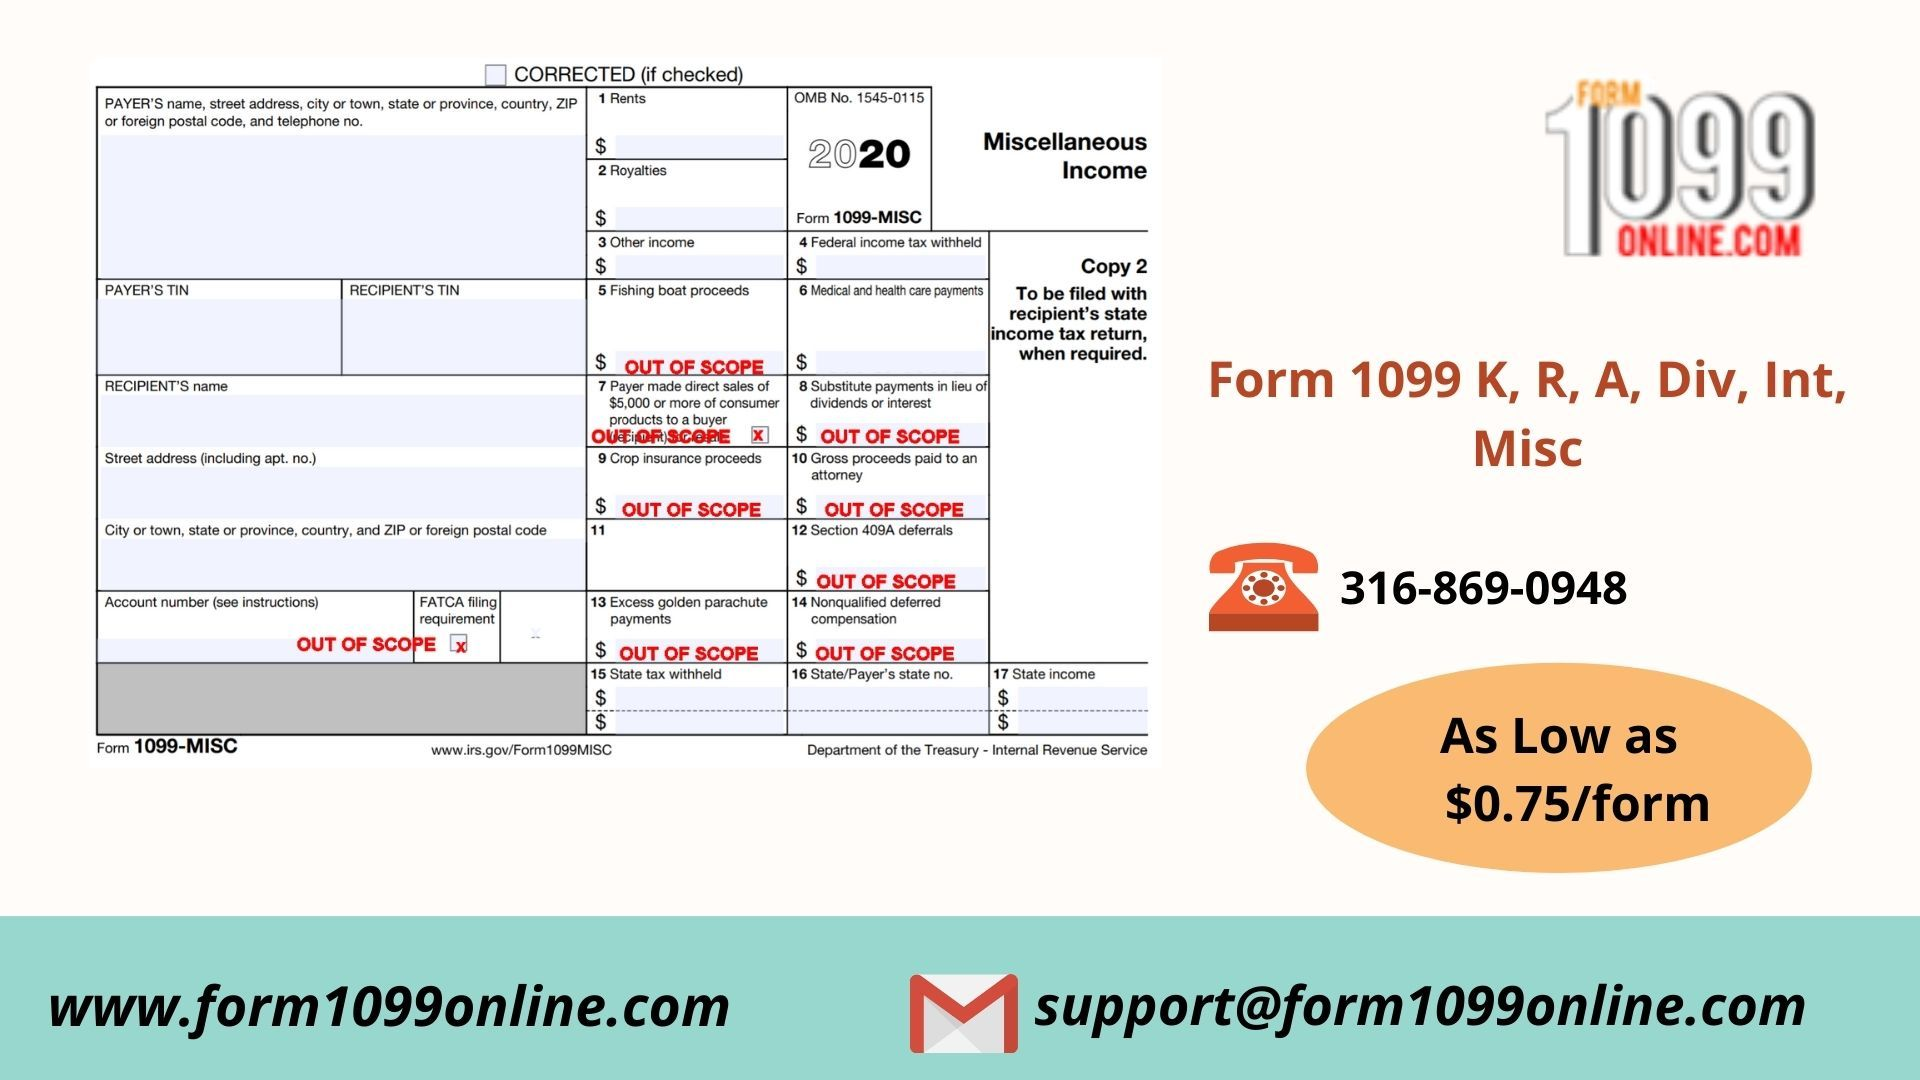 1099 Misc Form Download Alien Romances Tax Forms For Professional Writers Tax Forms Tax Software Employment Application